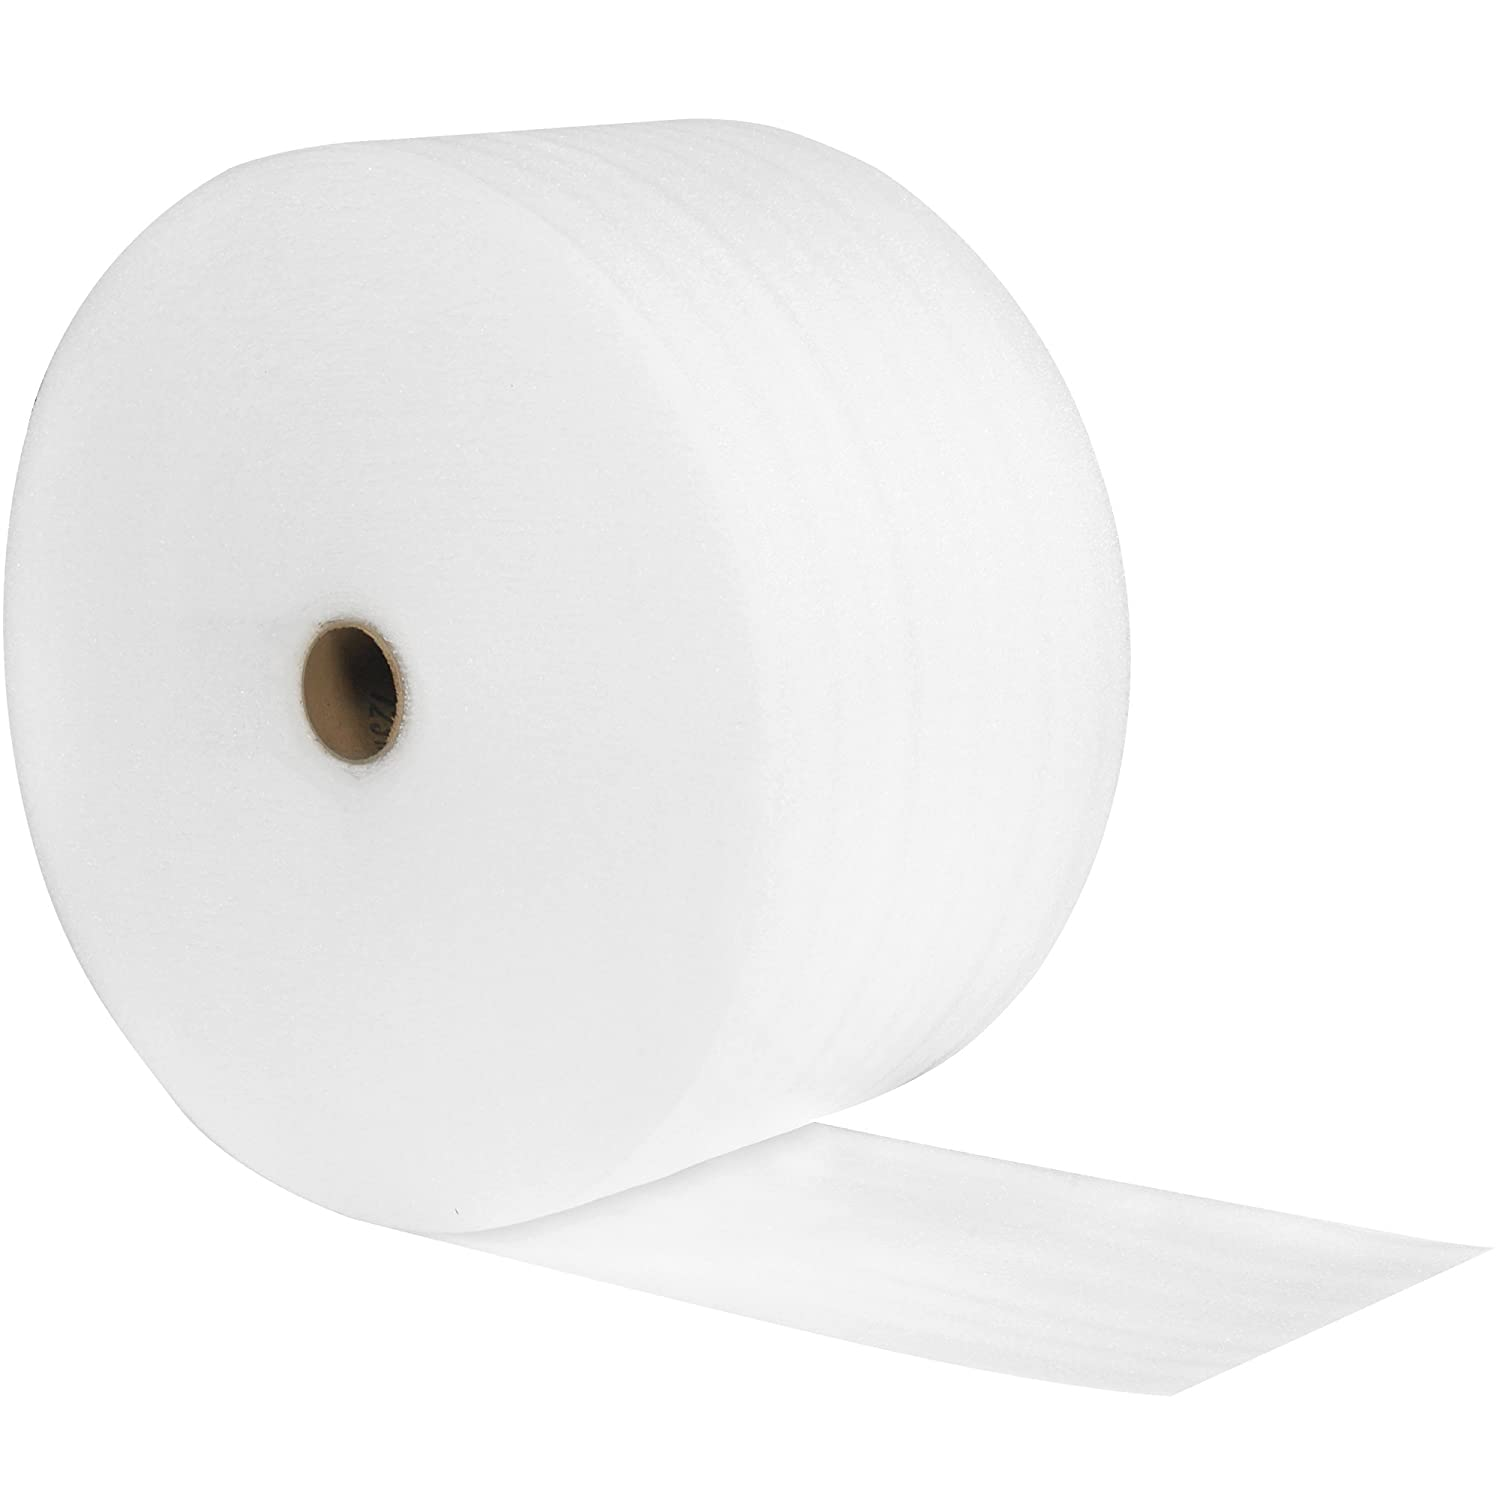 Aviditi Polyethylene UPSable Perforated Air x L Roll Foam 350' Excellent Shipping included